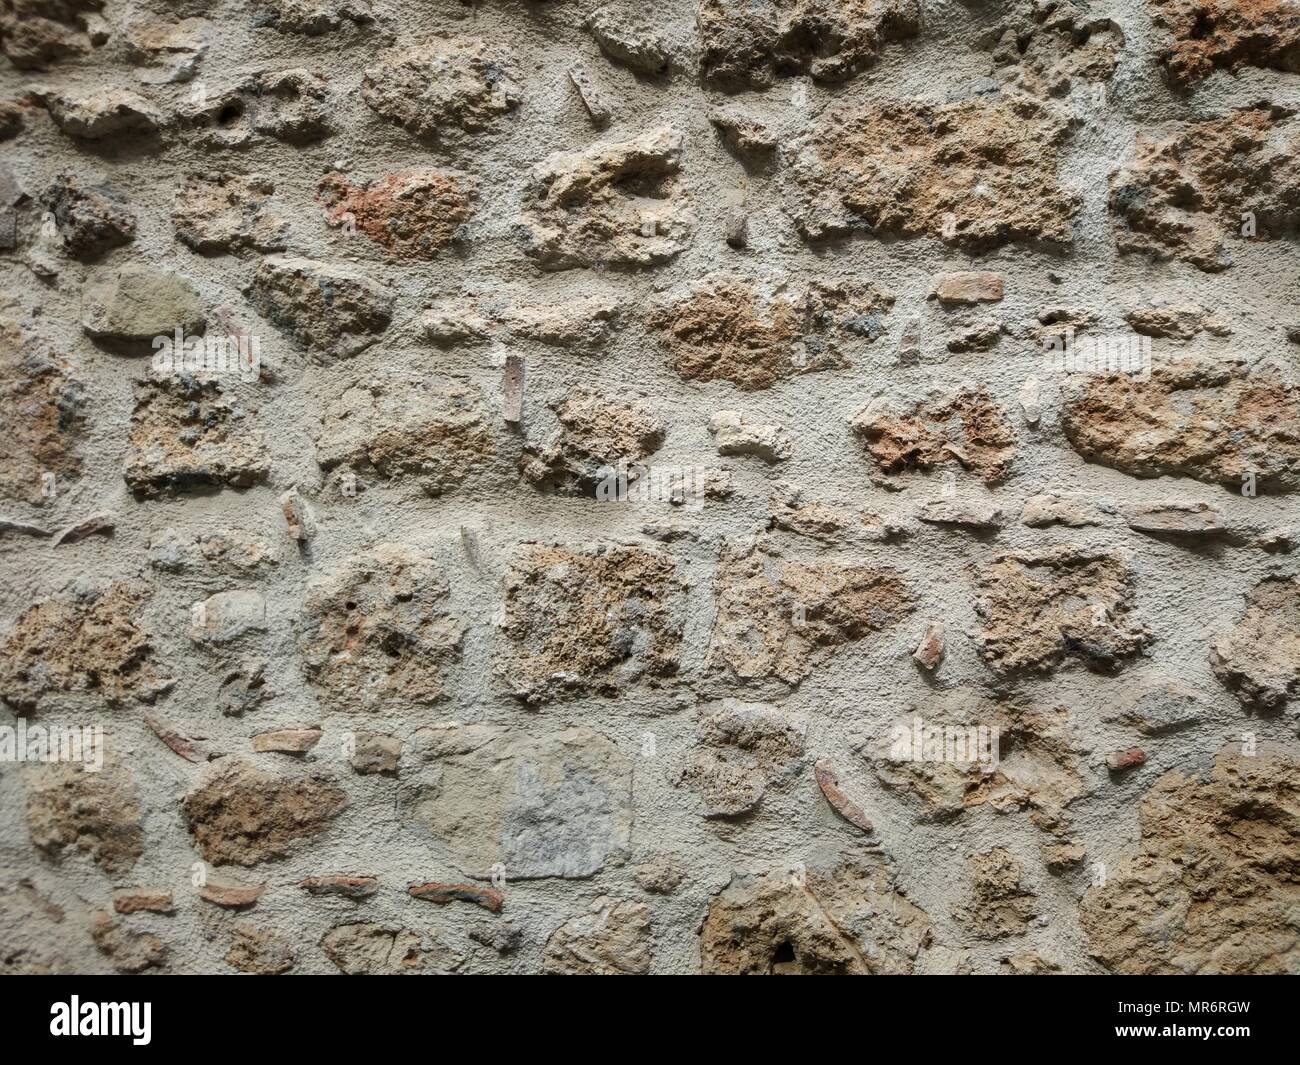 Stained wall surface - Stock Image